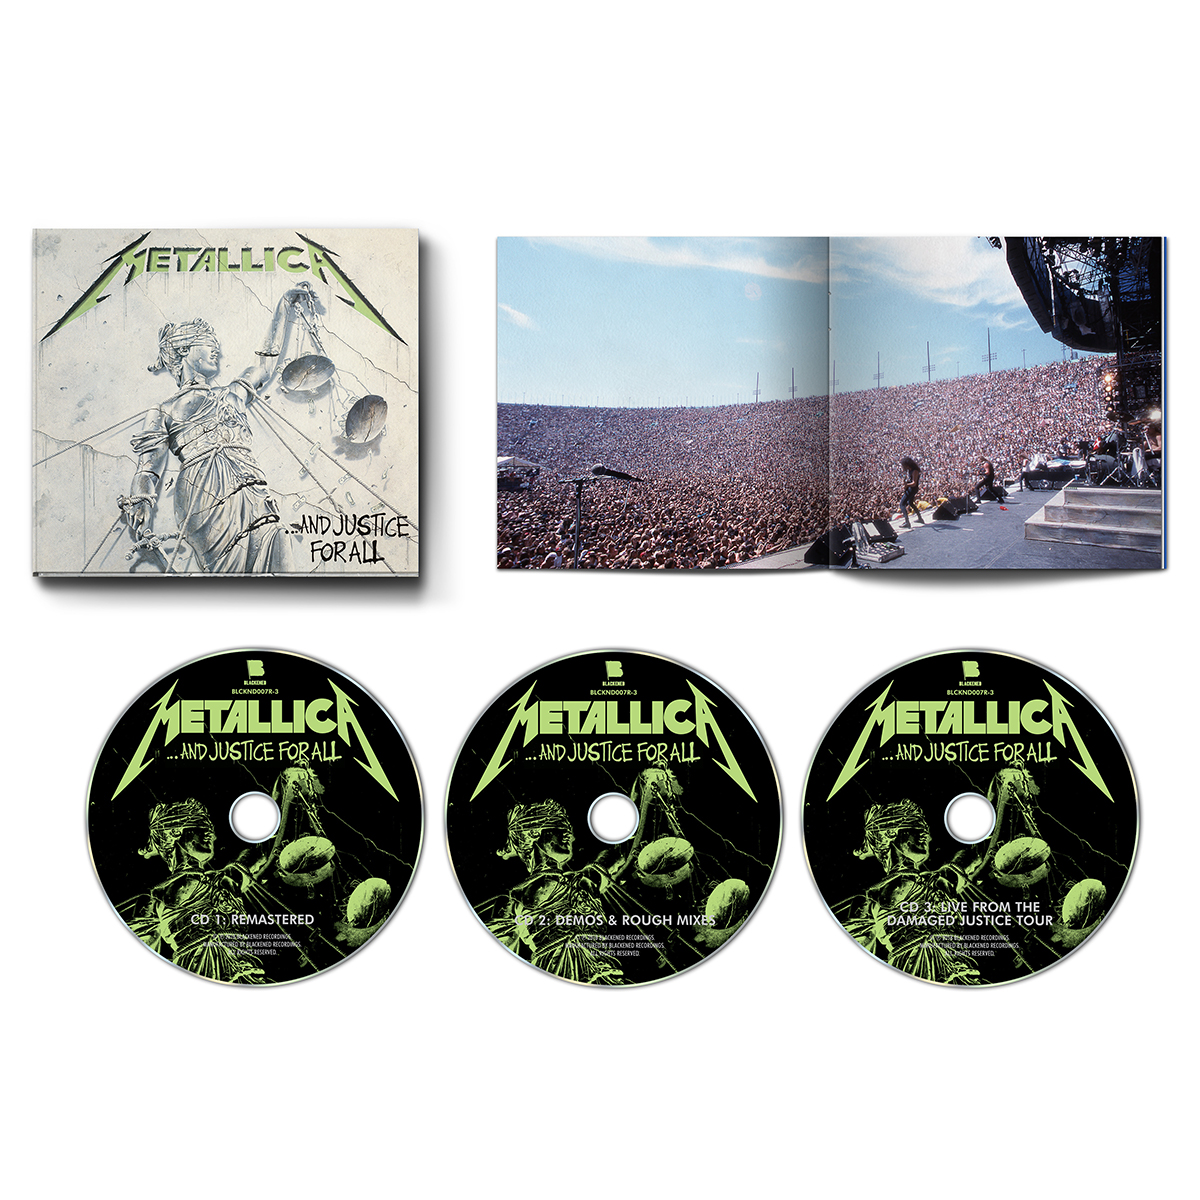 …And Justice For All (Re-Mastered) – 3CD Set - Metallica